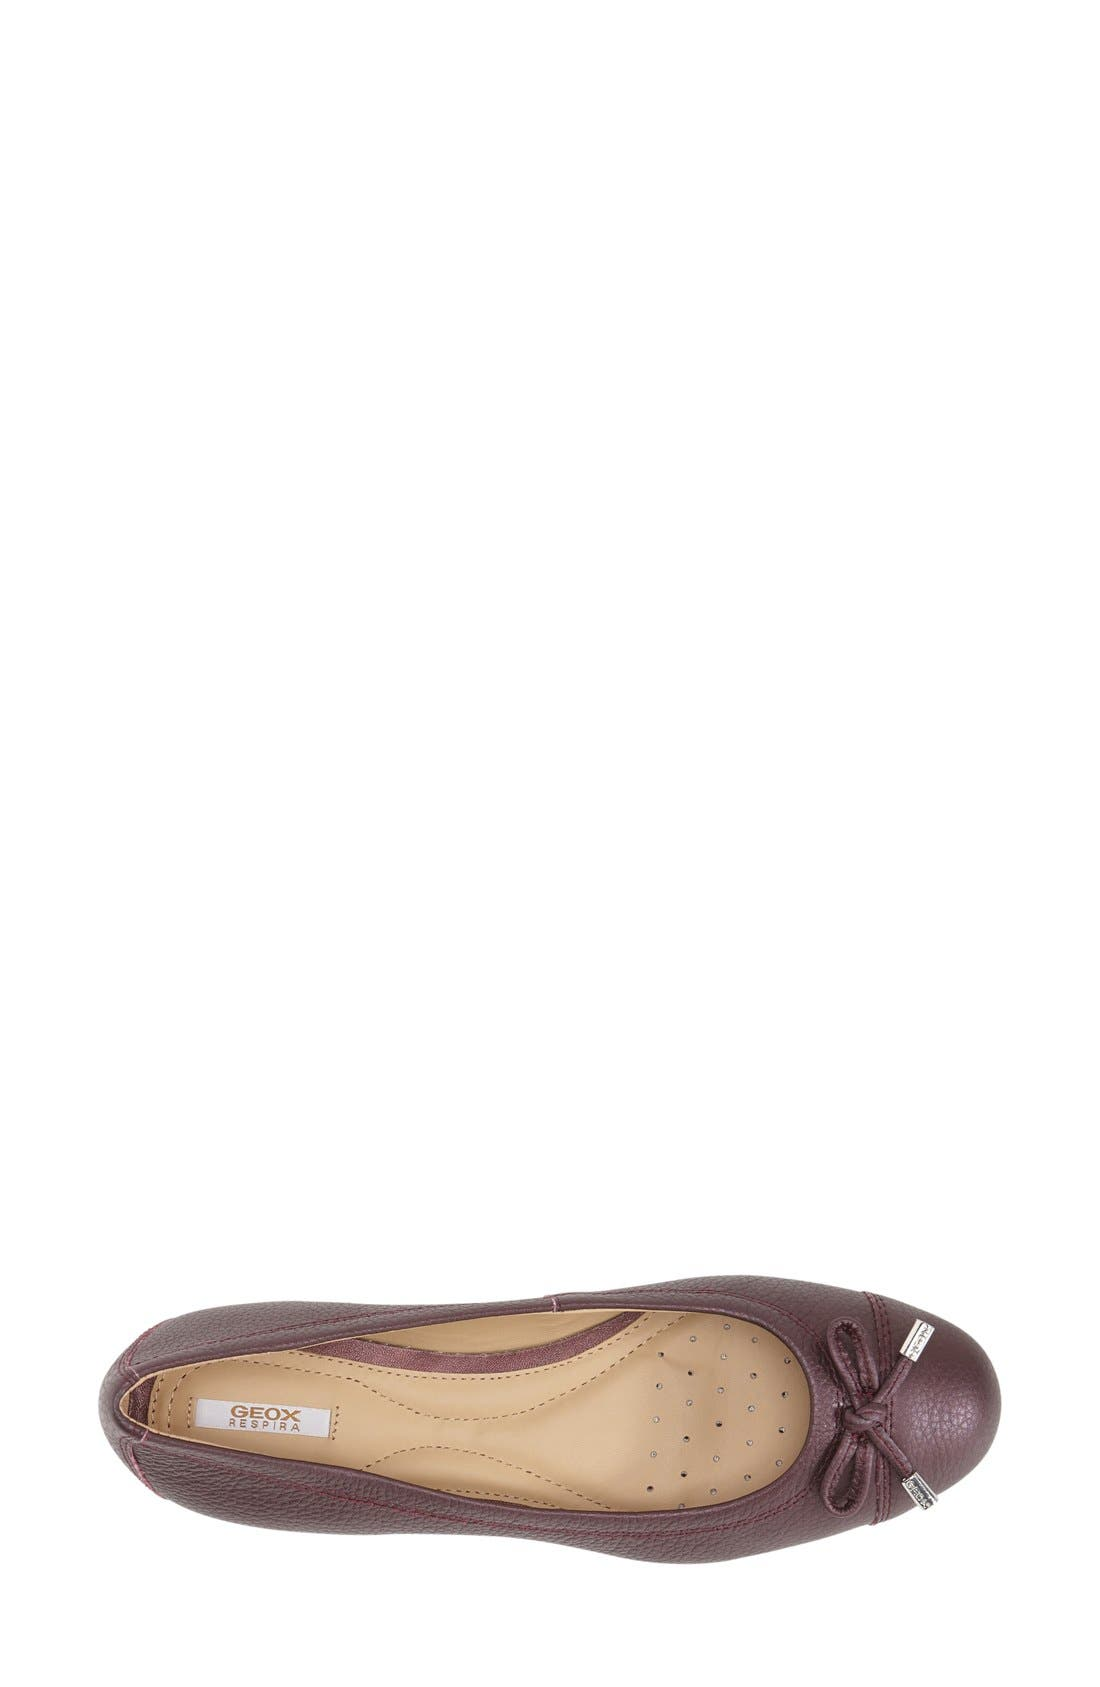 'Lola 16' Cap Toe Ballet Flat,                             Alternate thumbnail 12, color,